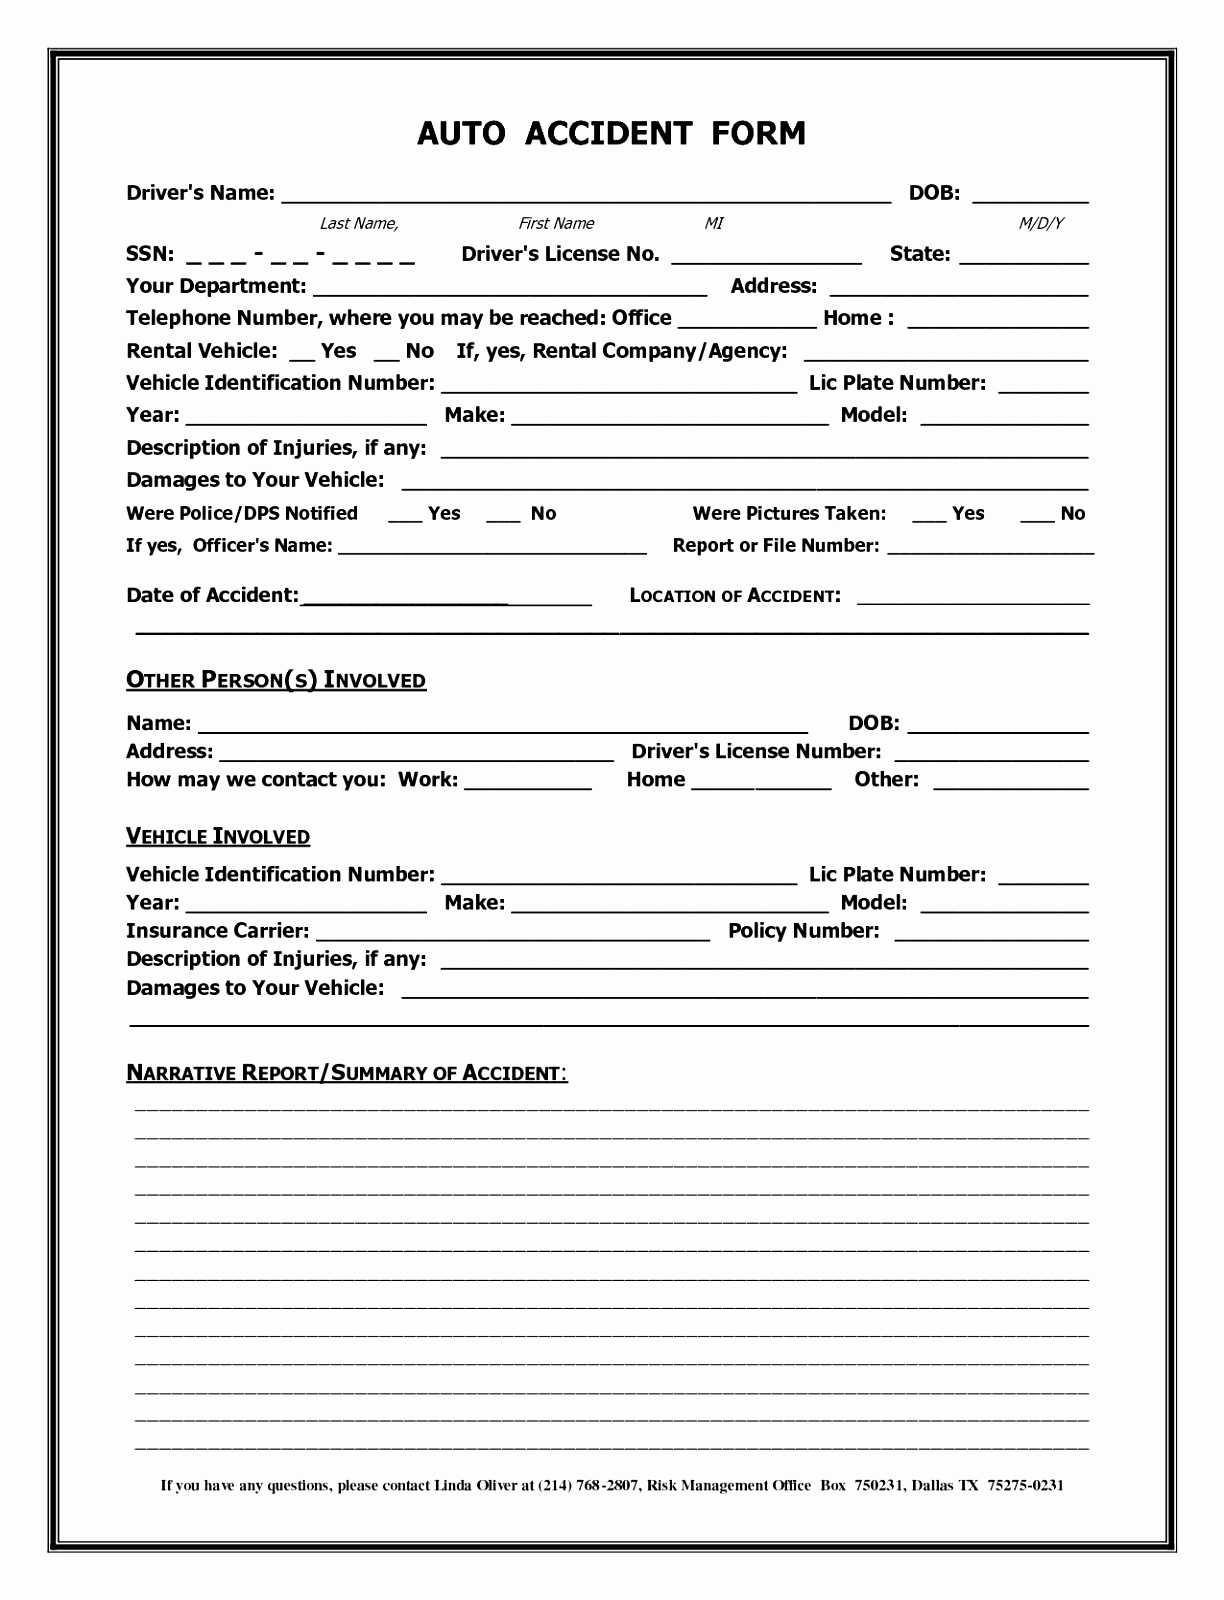 Accident Report Form Template Uk - Atlantaauctionco With Regard To Vehicle Accident Report Form Template